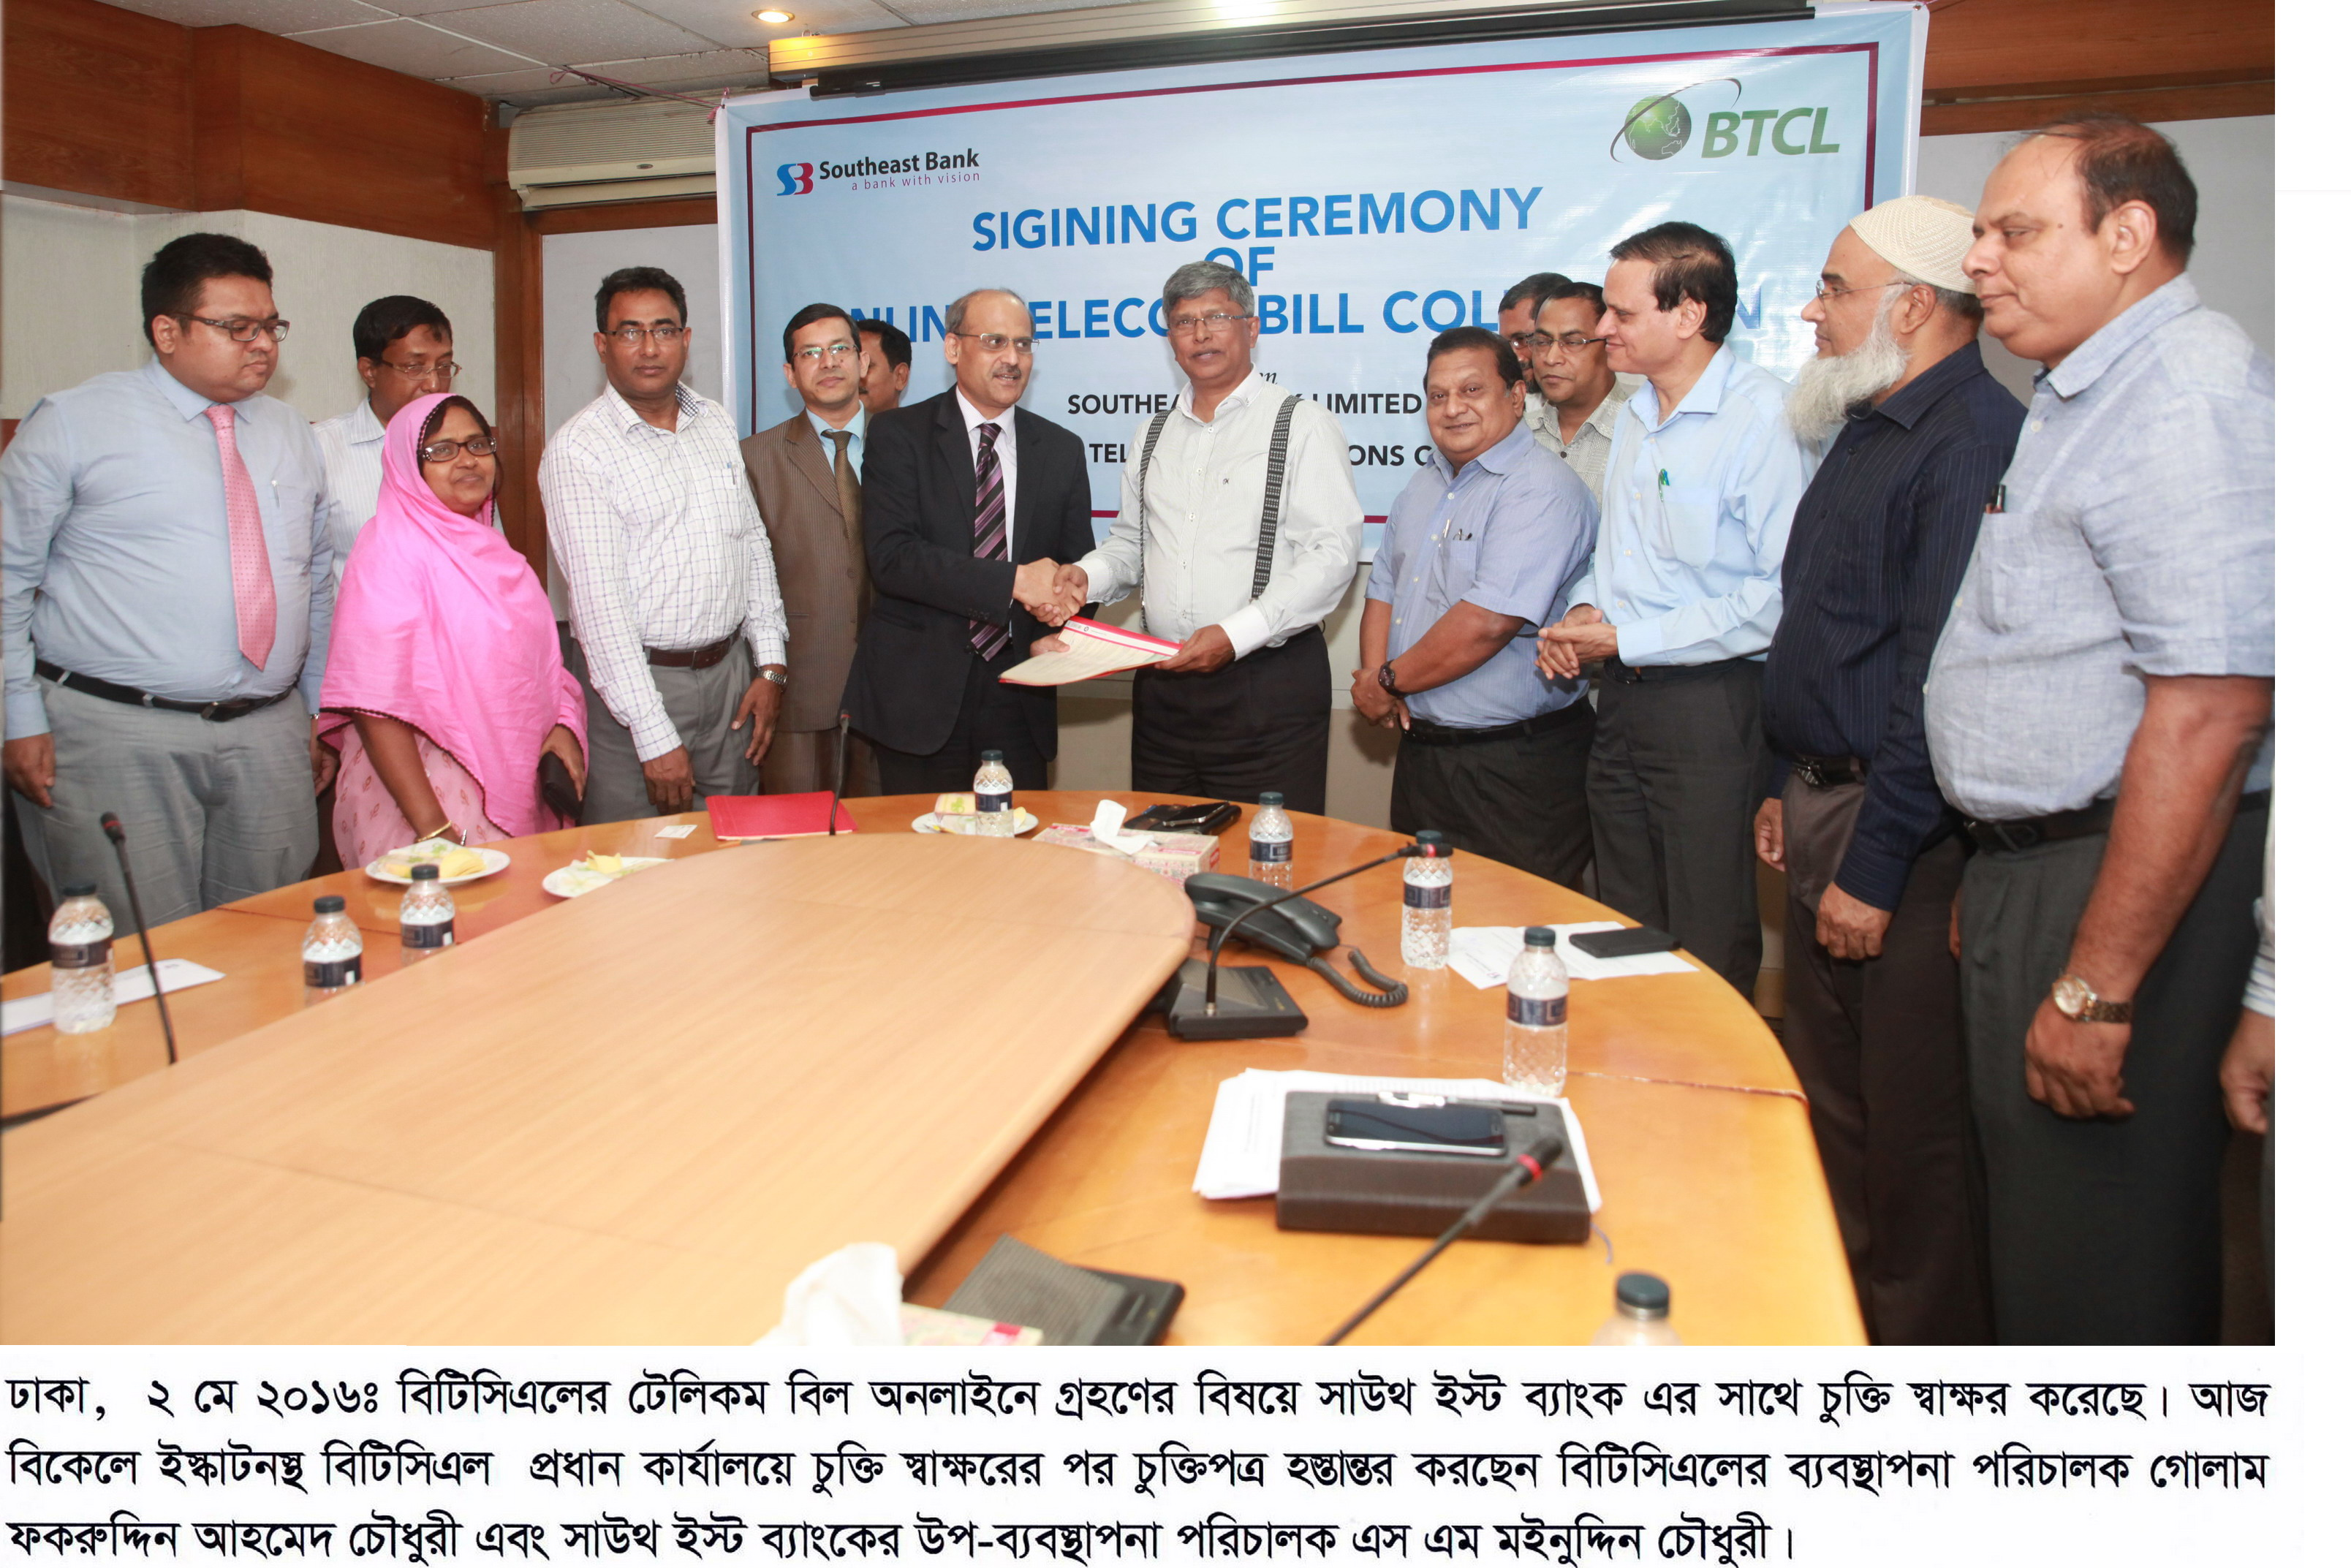 BTCL-SouthEast Bank Contract Signing 02 May 2016